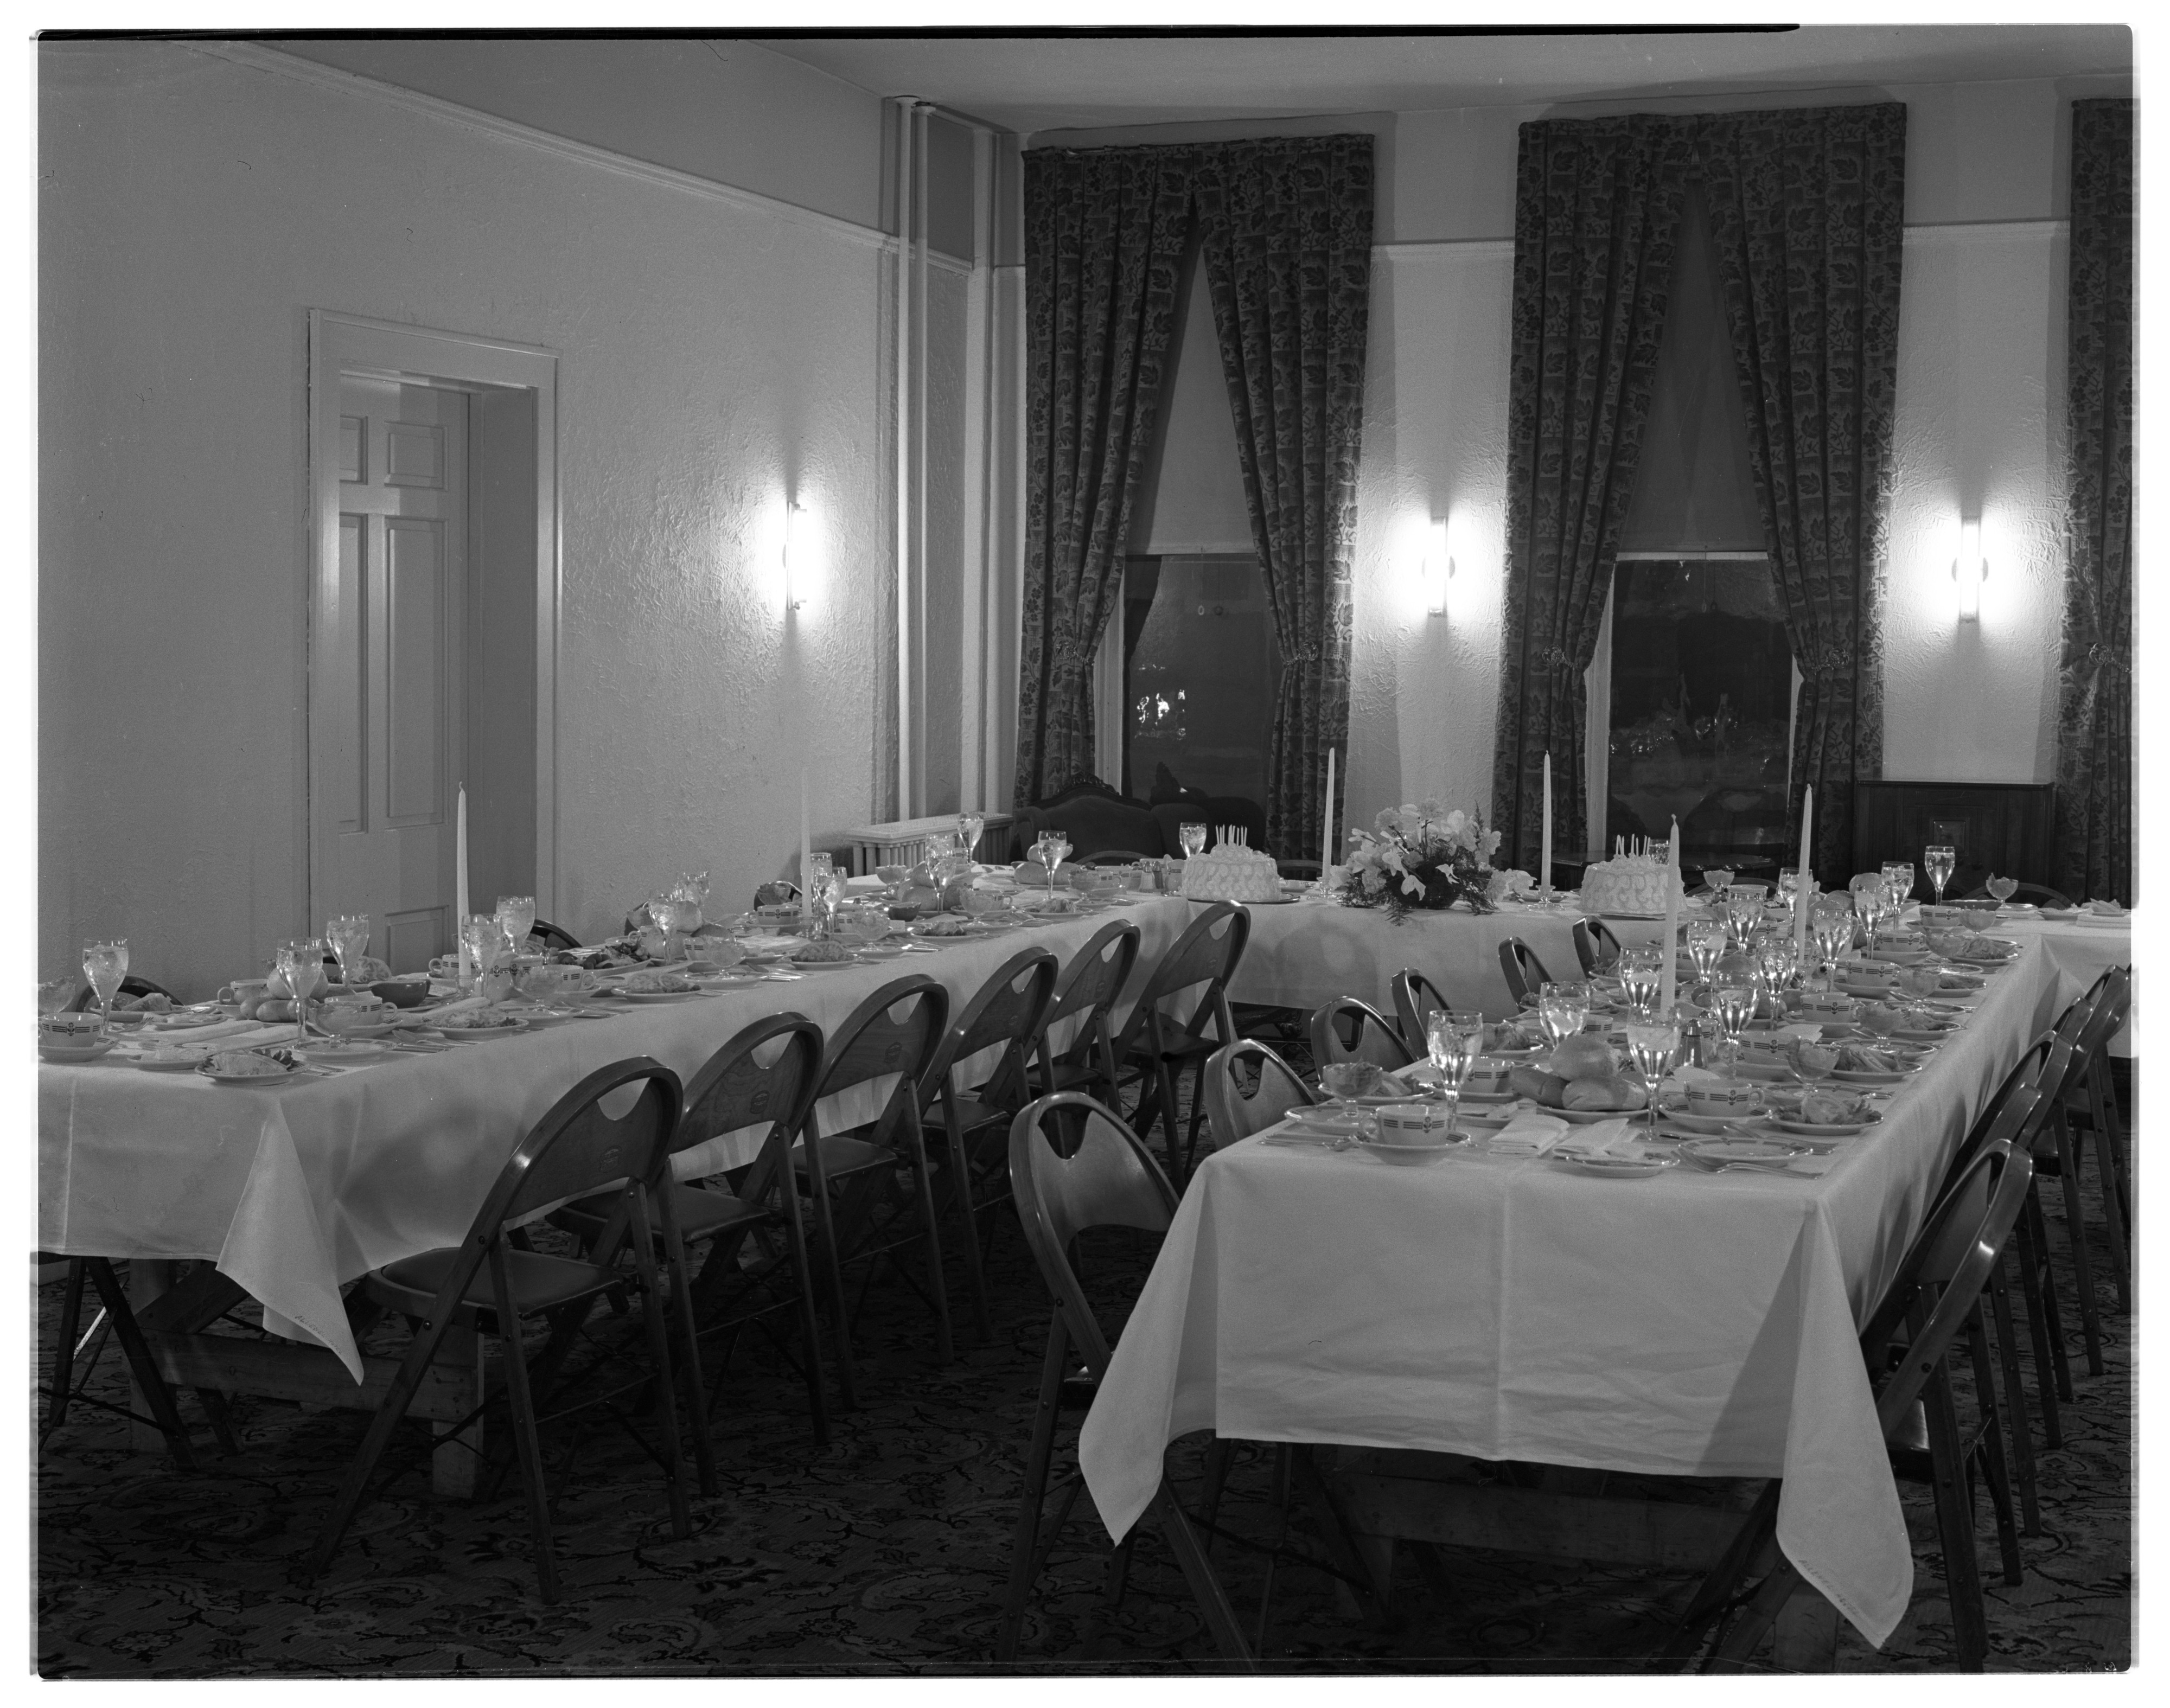 State Saving Bank Employee Banquet in the Private Dining Room at Allenel Hotel, Janaury 1939 image